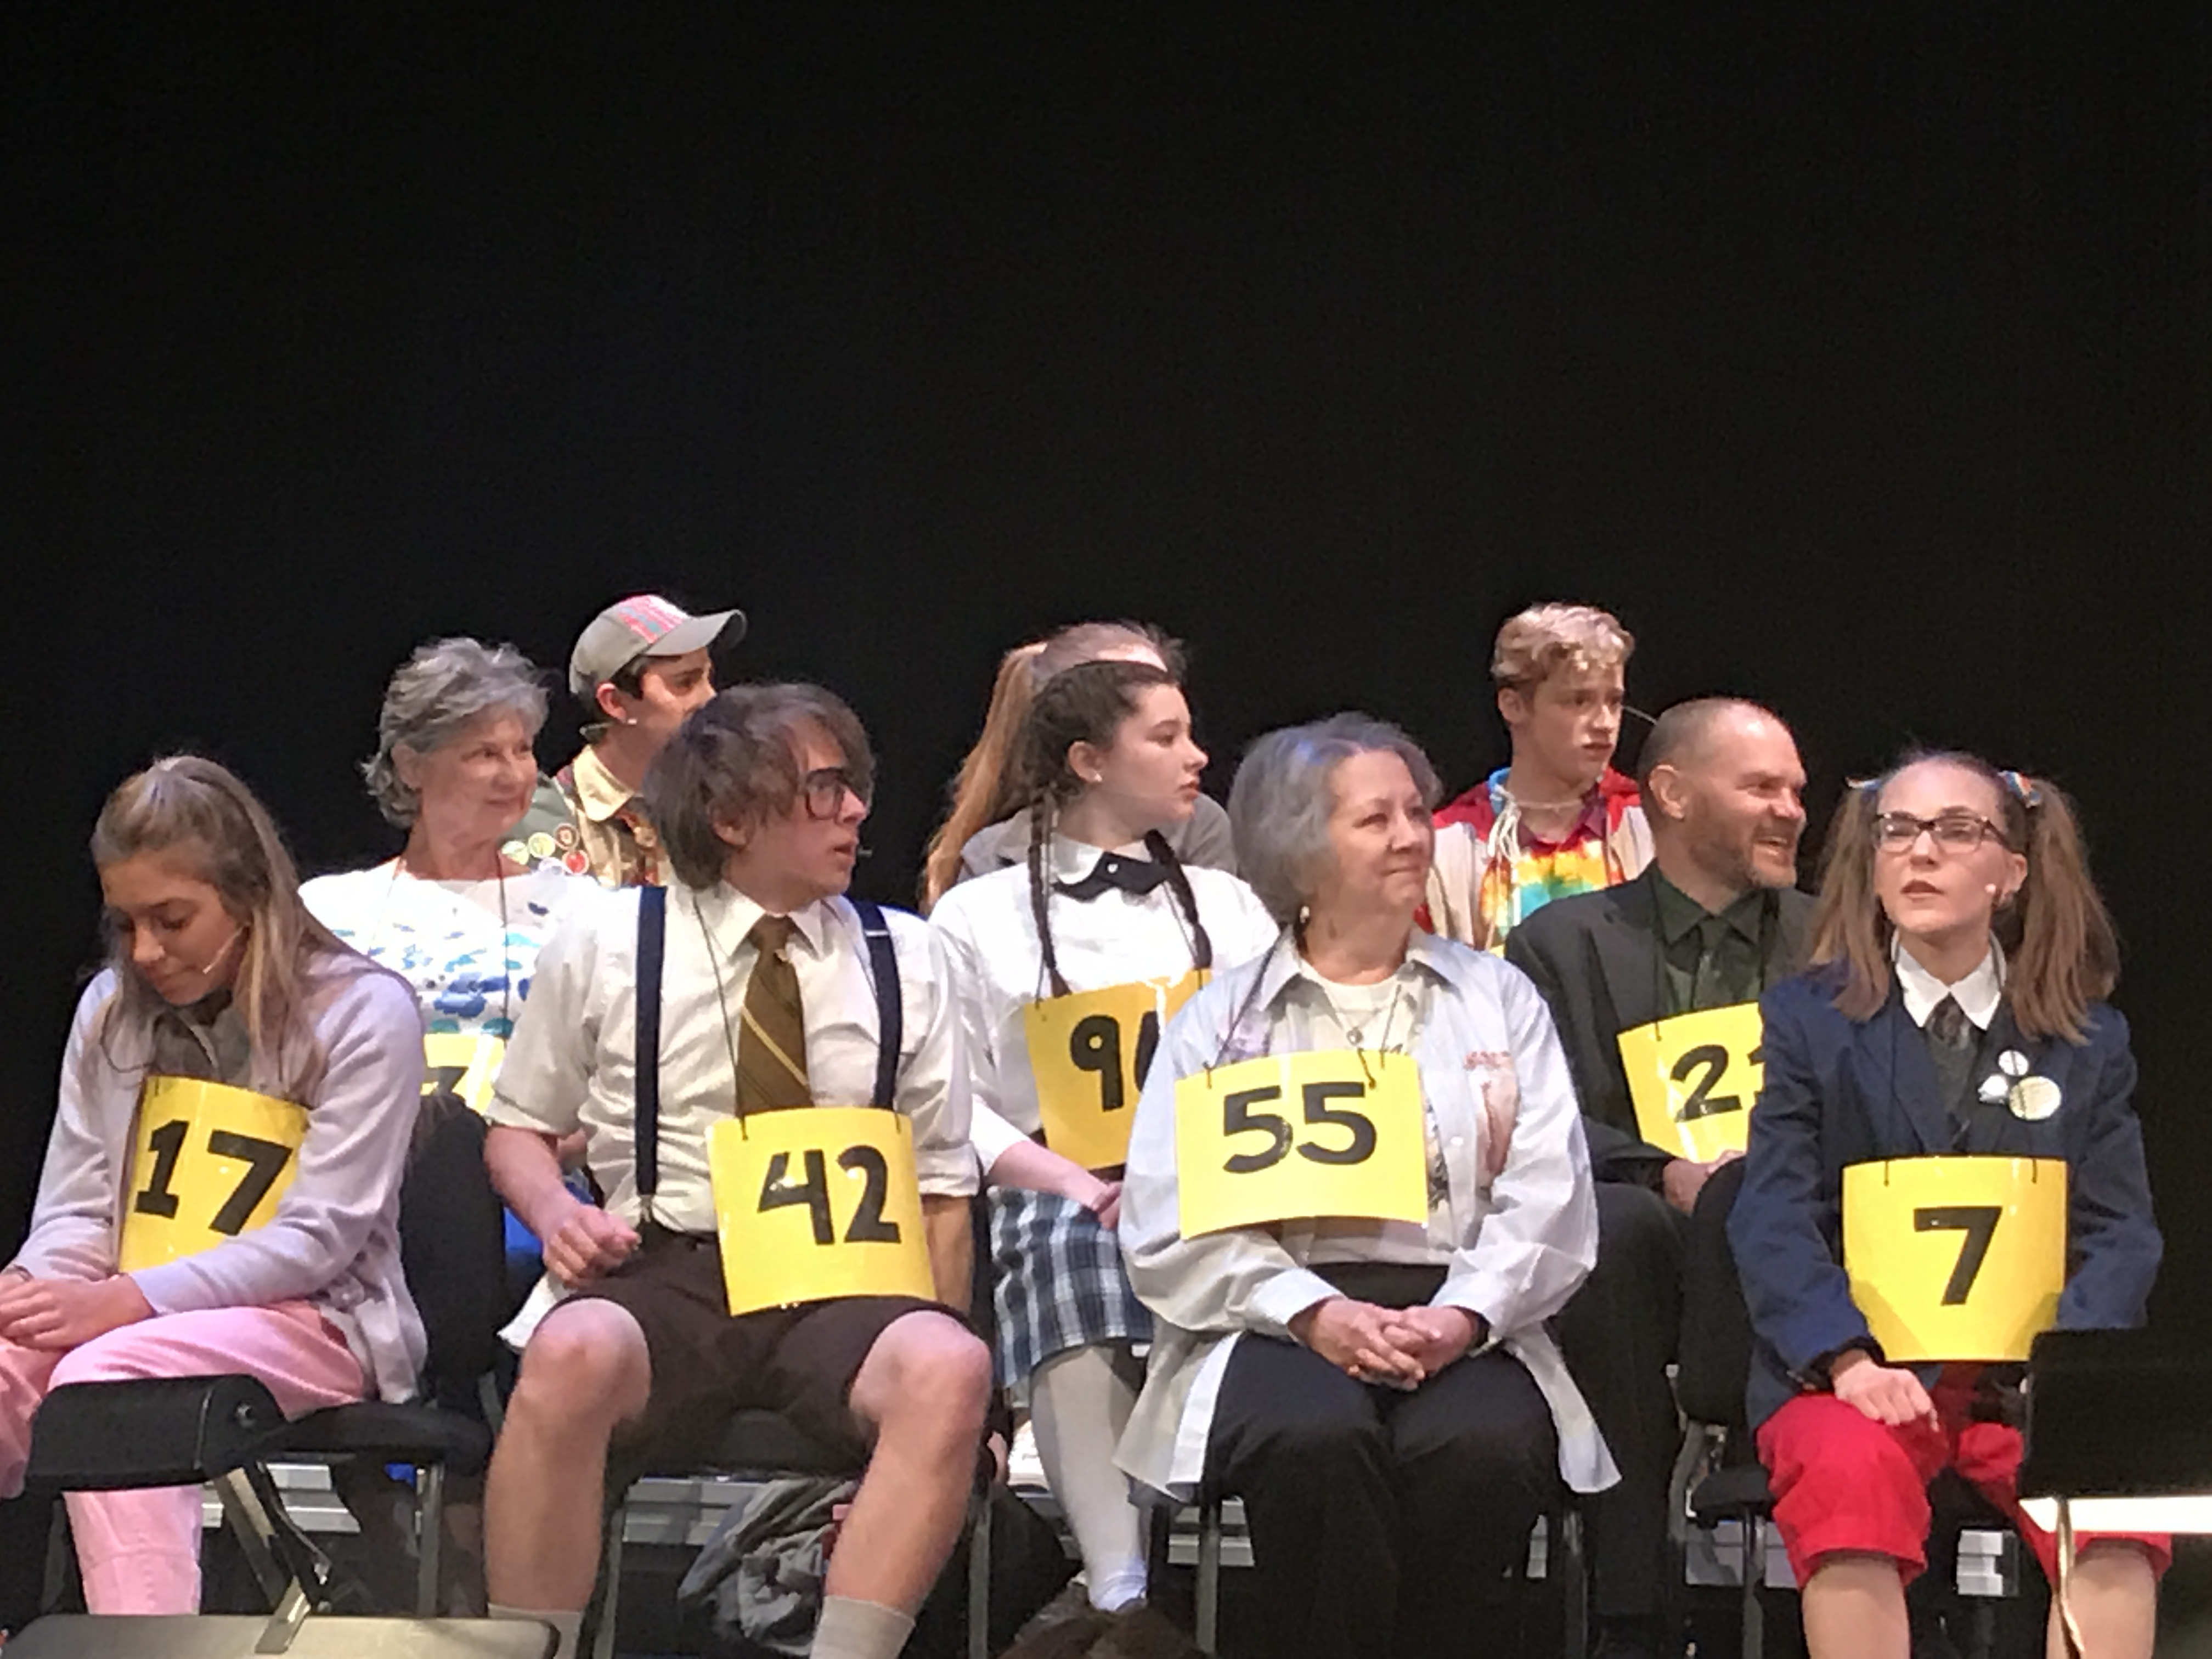 Cast of Putnam County Spelling Bee